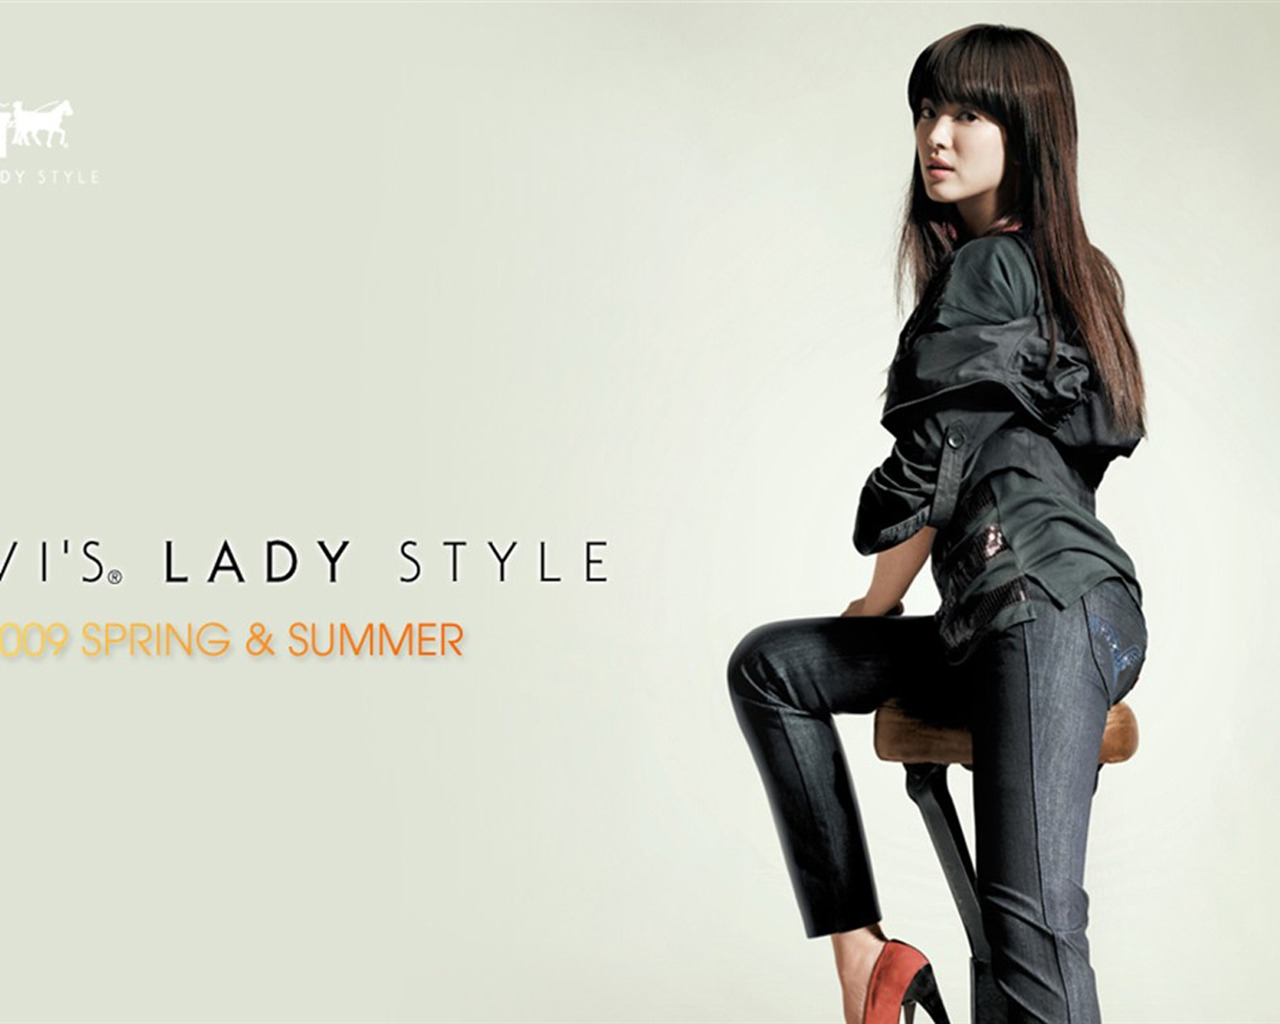 levis lady style clothing - photo #8